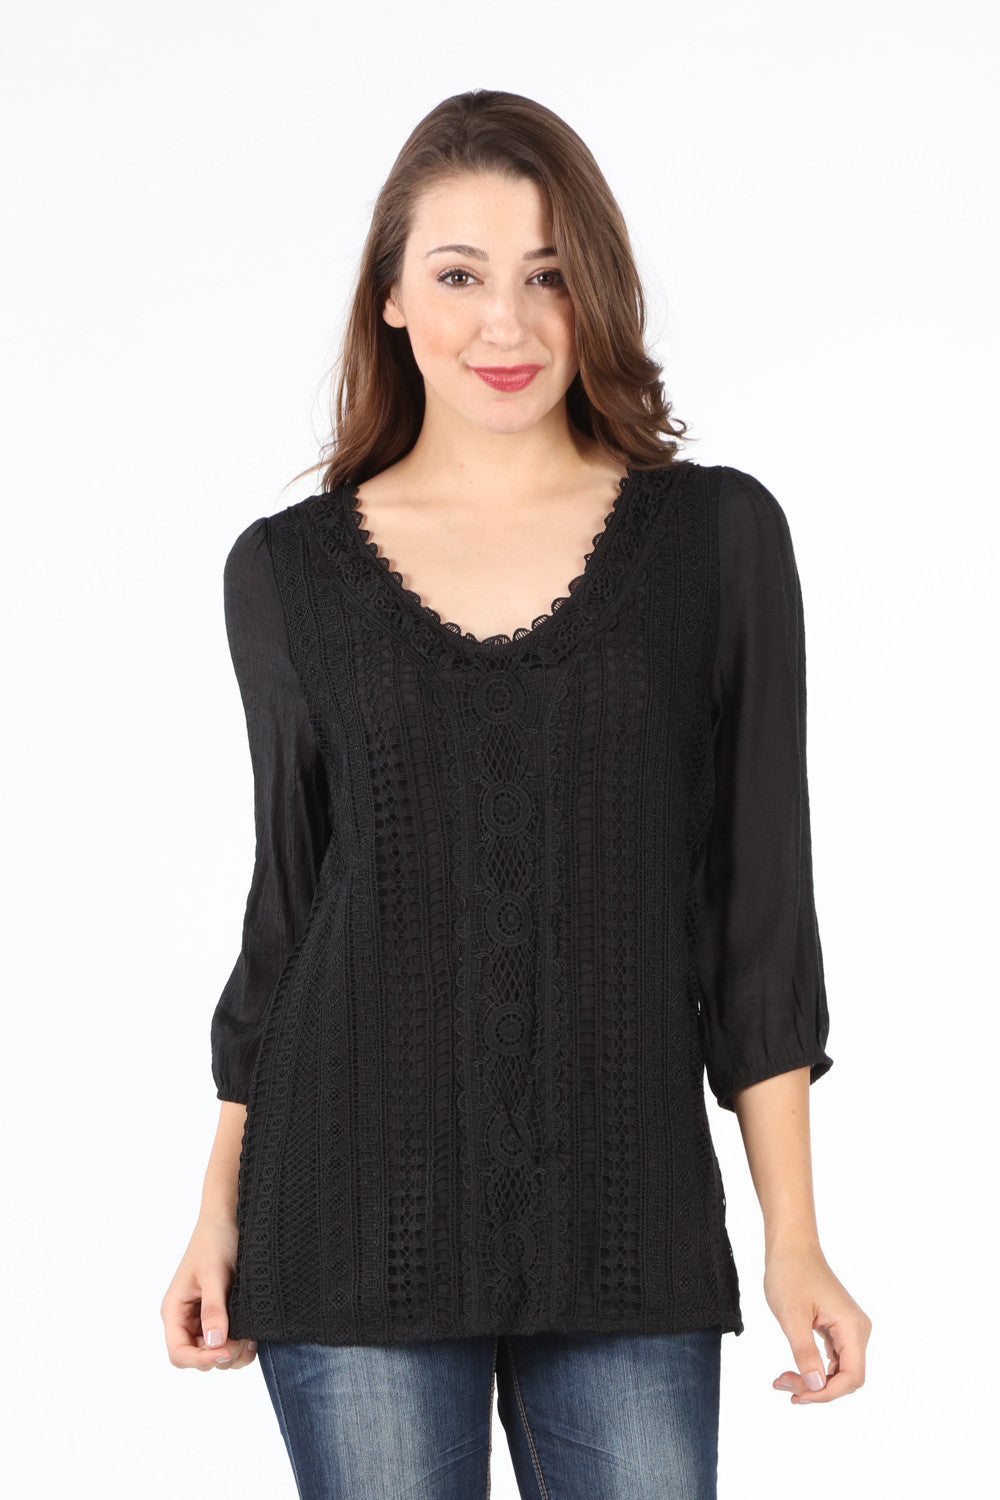 SB142 Black Front Crochet 3/4 Sleeve Blouse